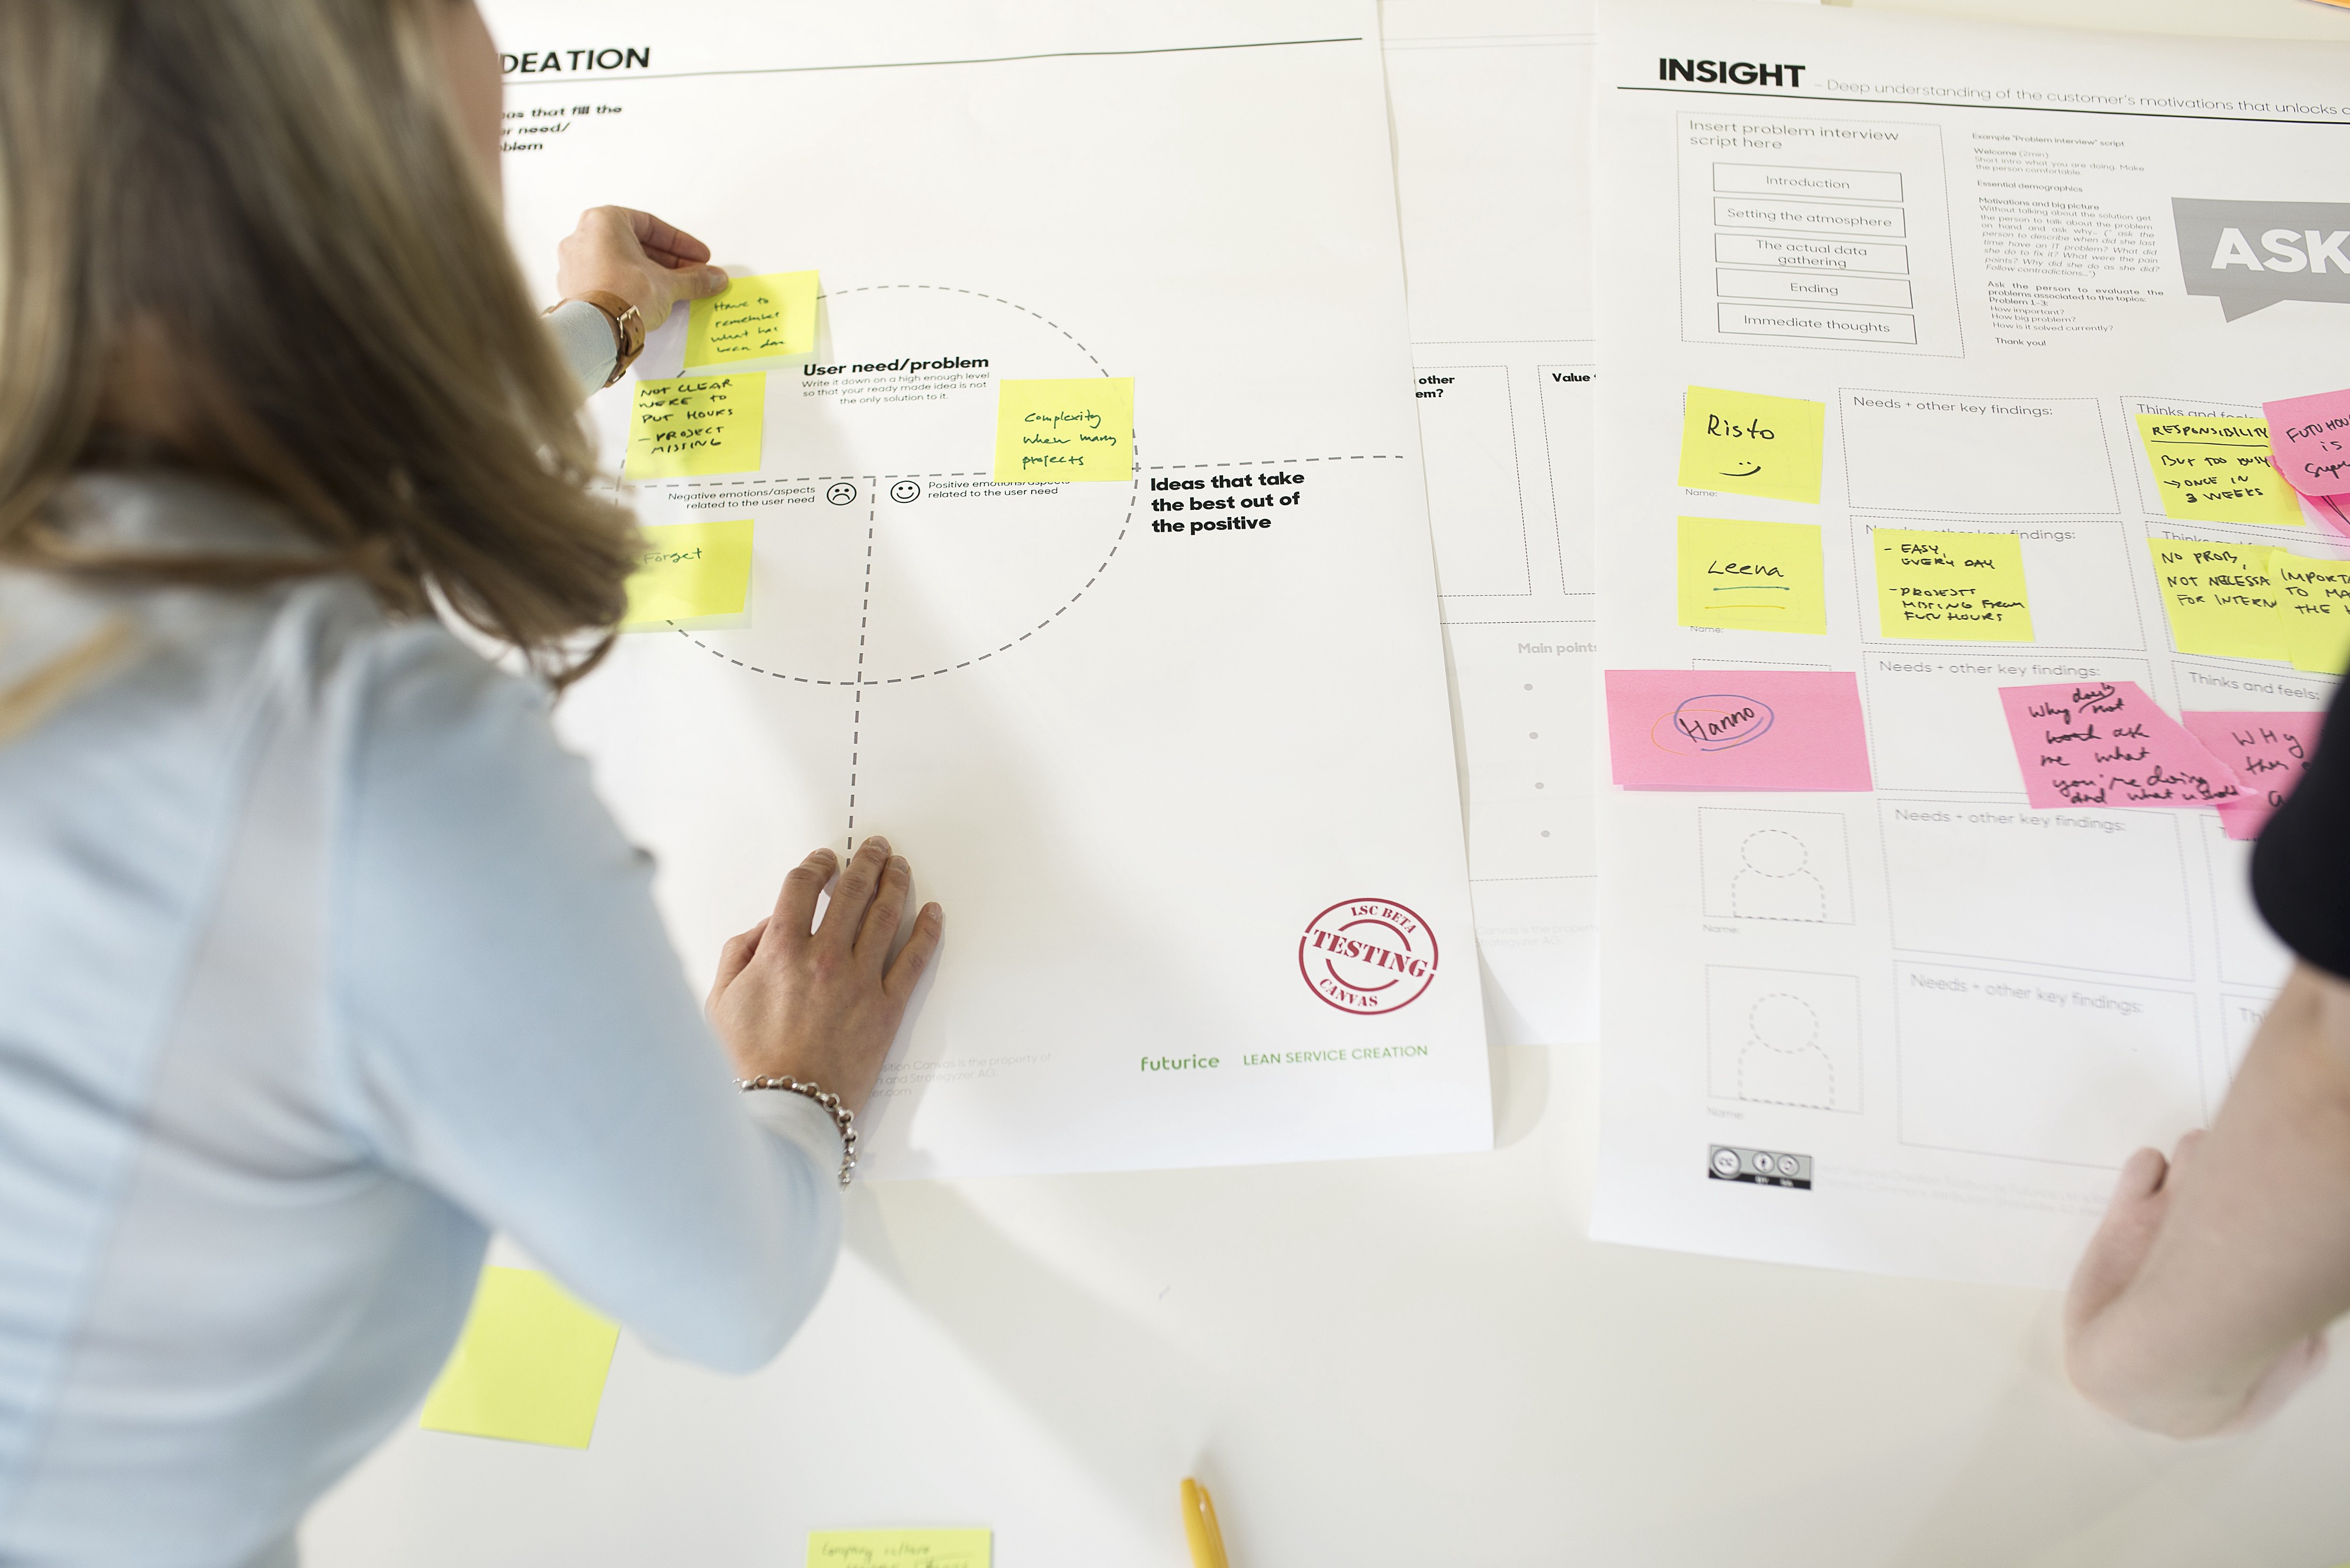 How to Get Your Ideas Aflight? — Futurice & Junction 2018